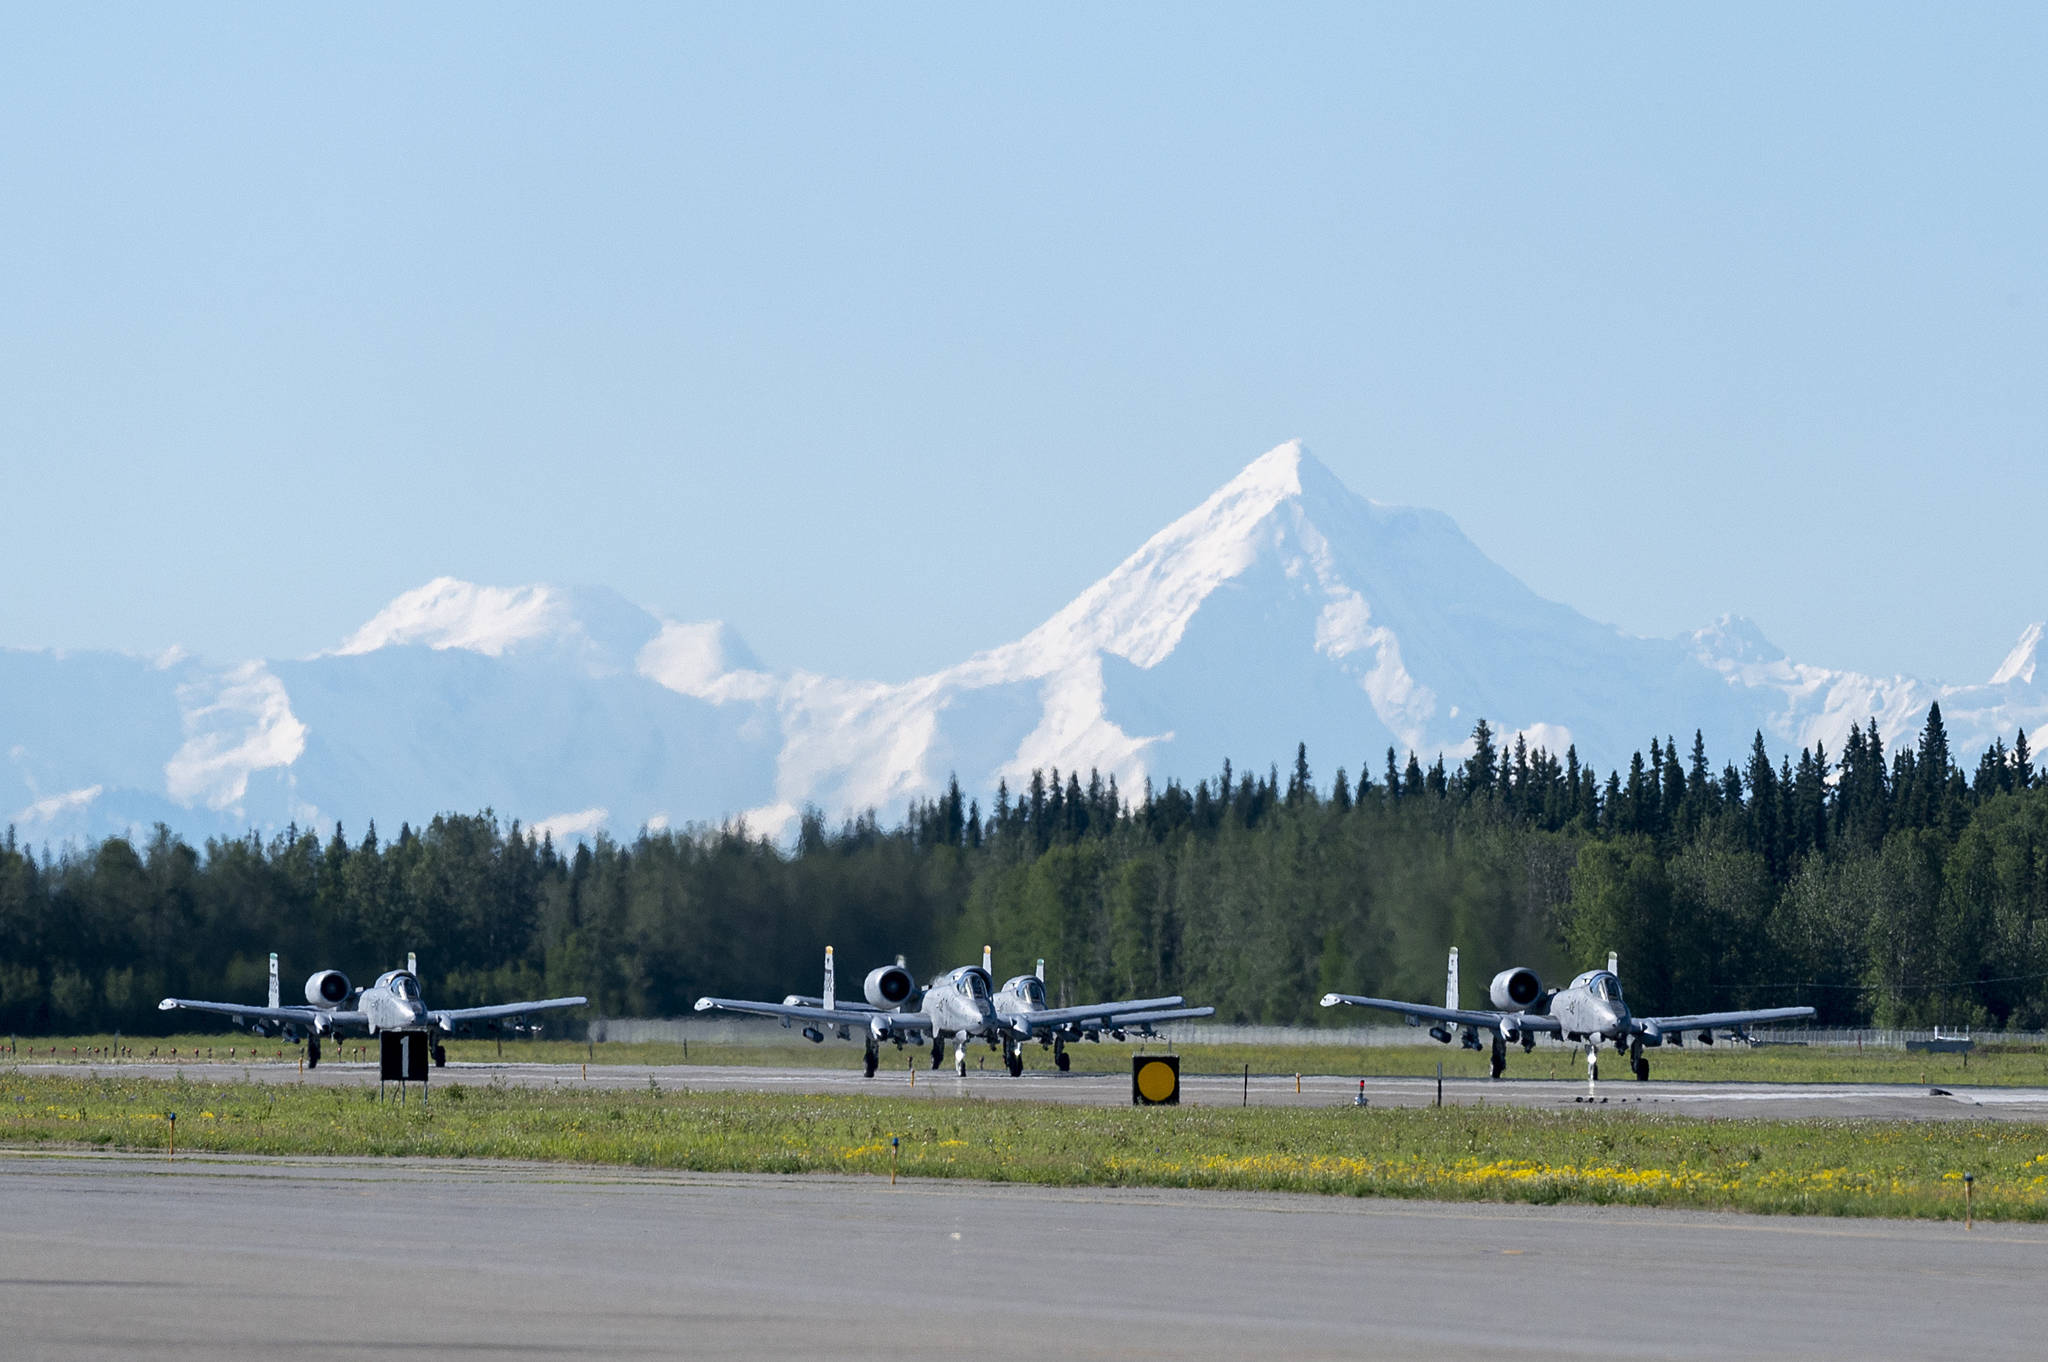 A-10 Thunderbolt II aircraft assigned to the 25th Fighter Squadron taxi during exercise Red Flag-Alaska 21-02 at Eielson Air Force Base, Alaska, June 14, 2021. (Tech. Sgt. Peter Thompson / U.S. Air Force)